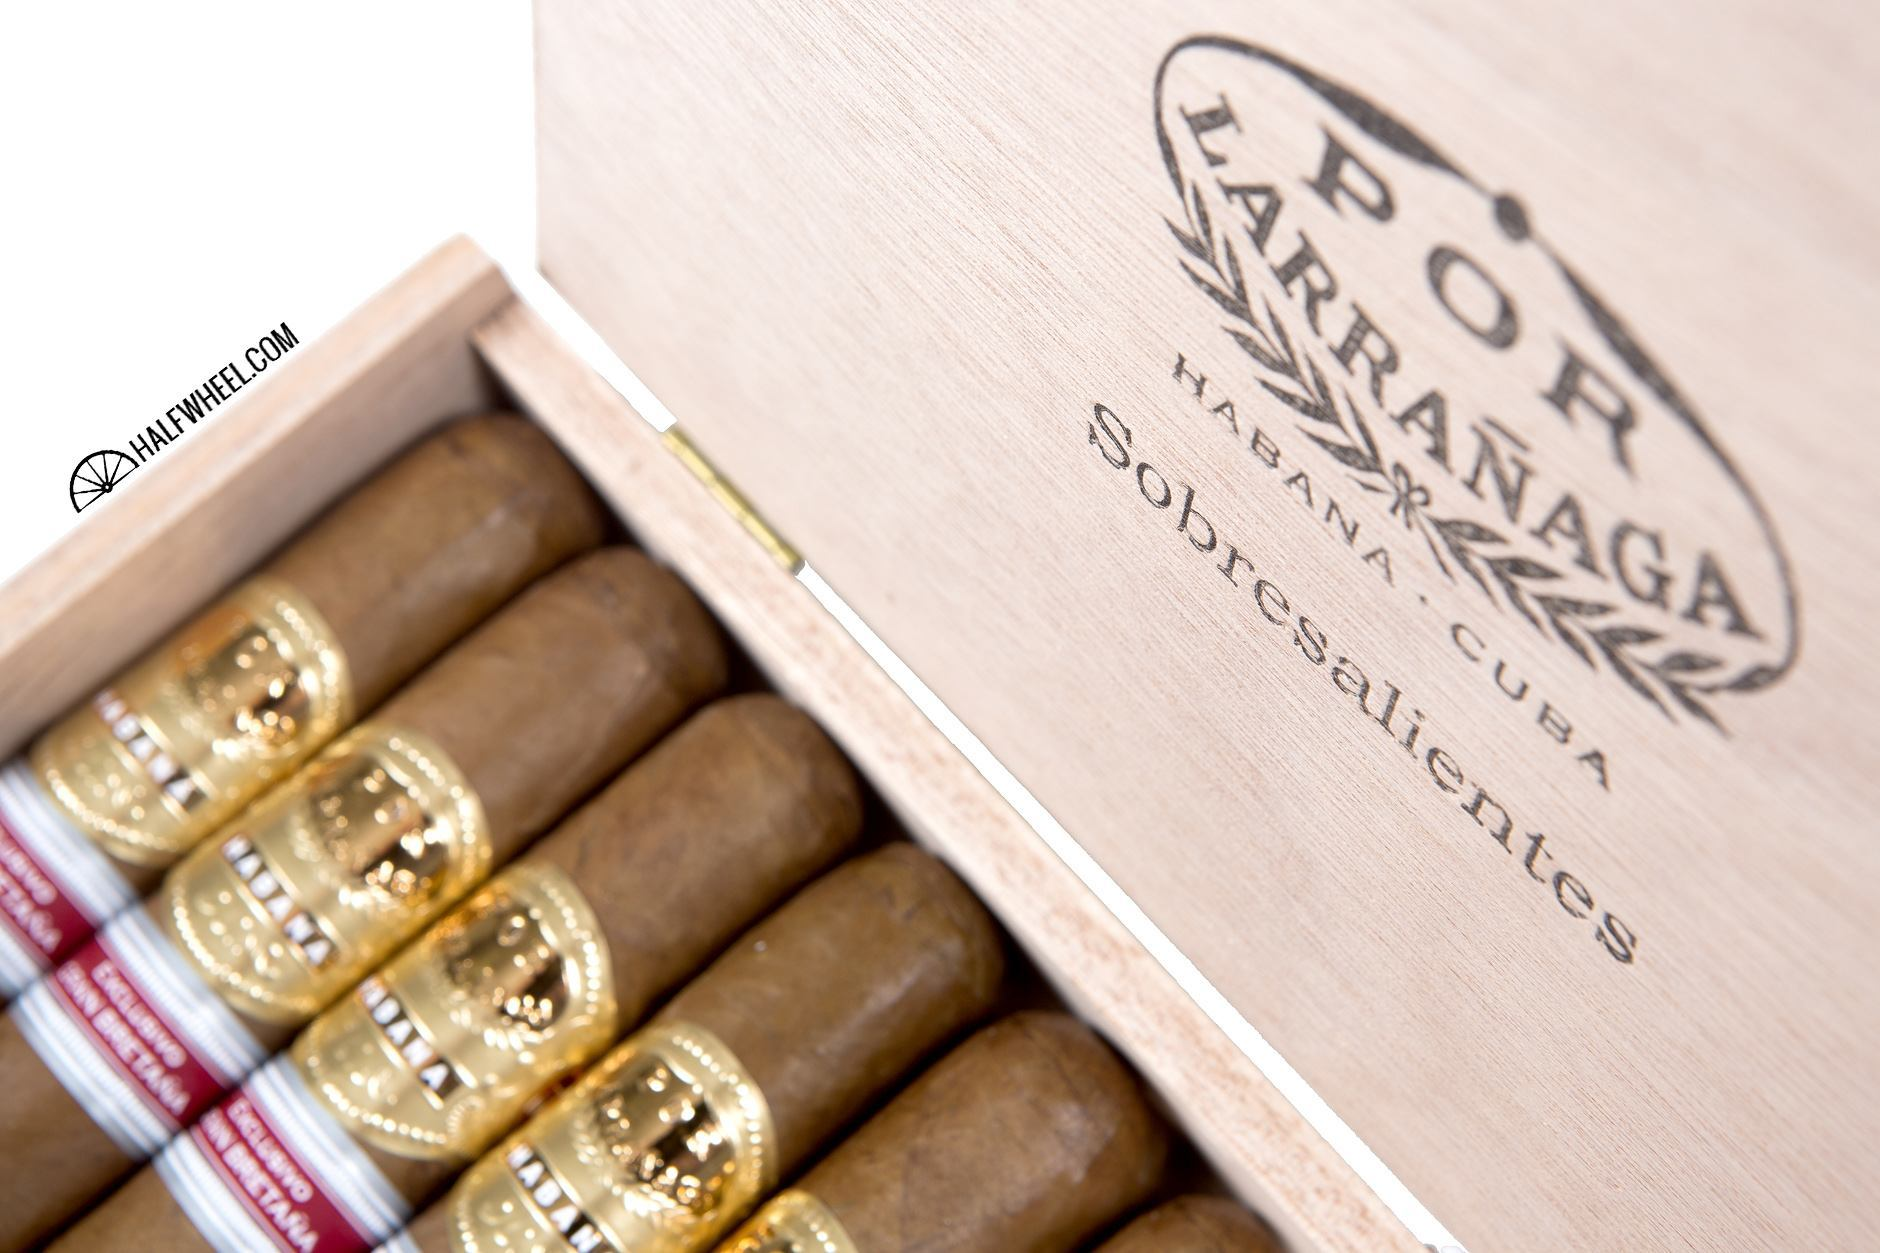 Por Larranaga Sobresalientes  ER Great Britain 2014 Box 2